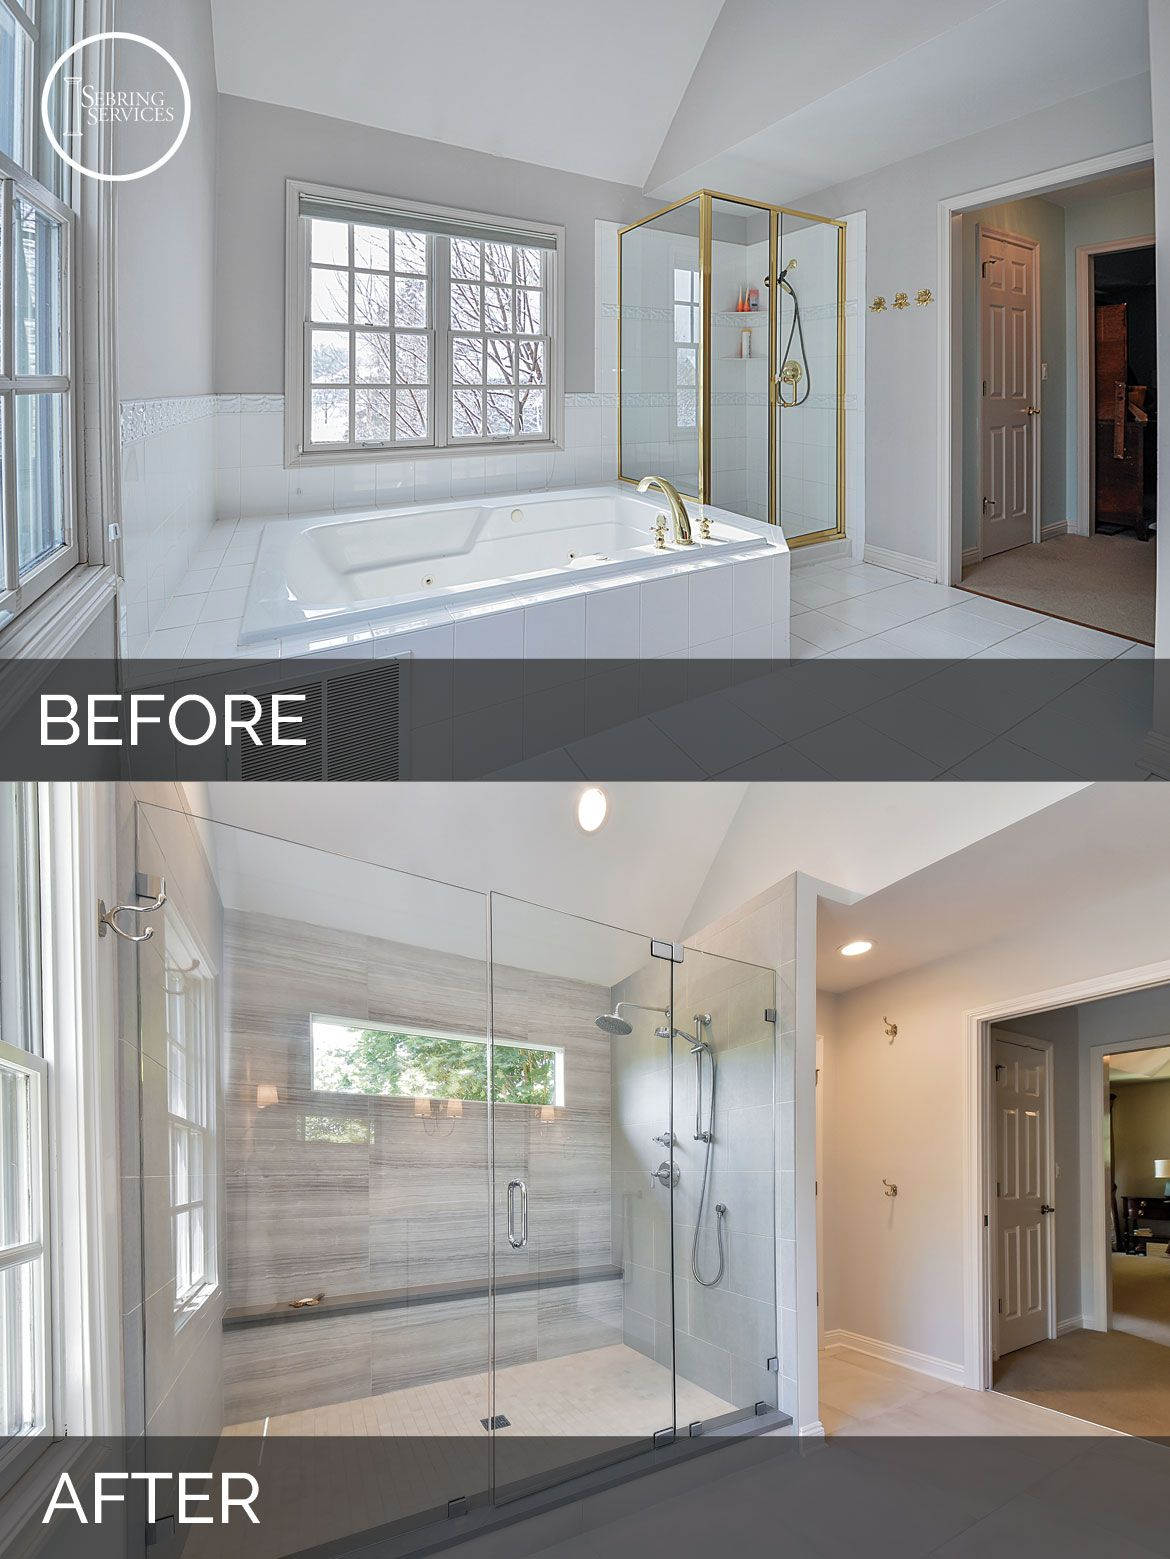 Carl susan 39 s master bath before after pictures for Master bathroom design ideas